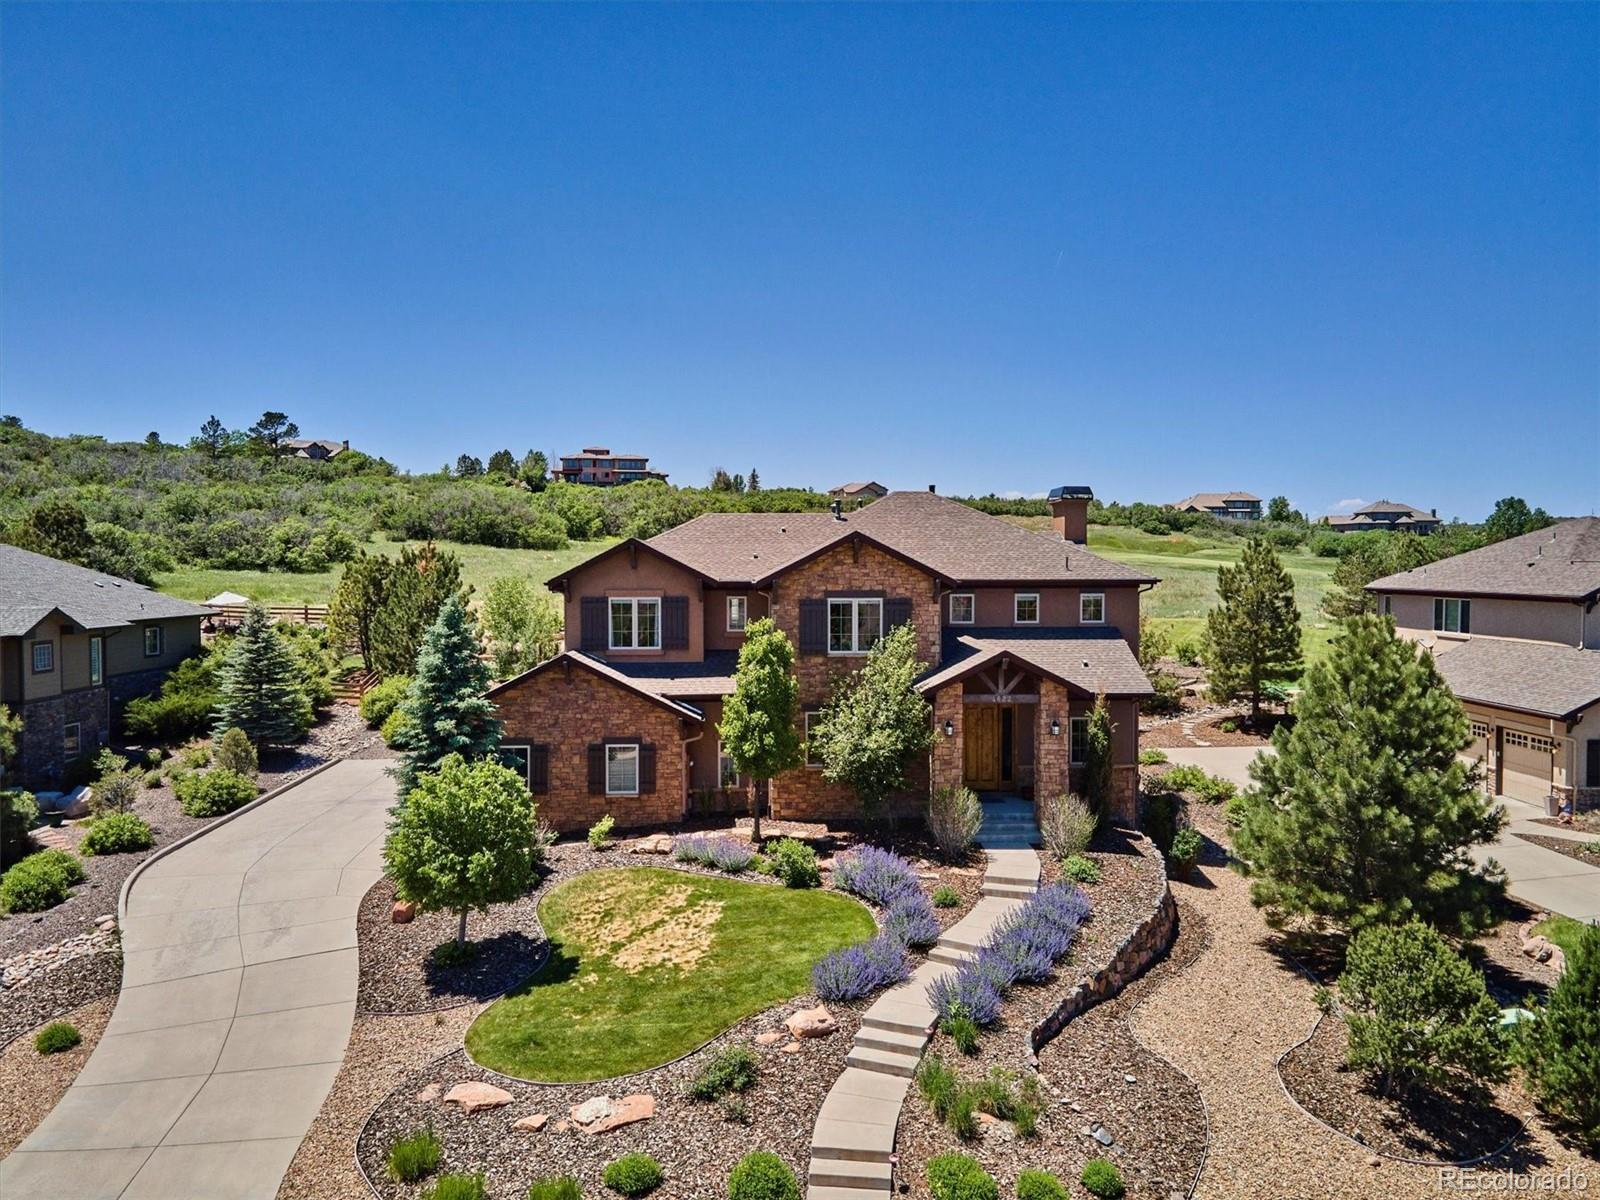 4622 Carefree Trail, Parker, CO 80134 - #: 5283190